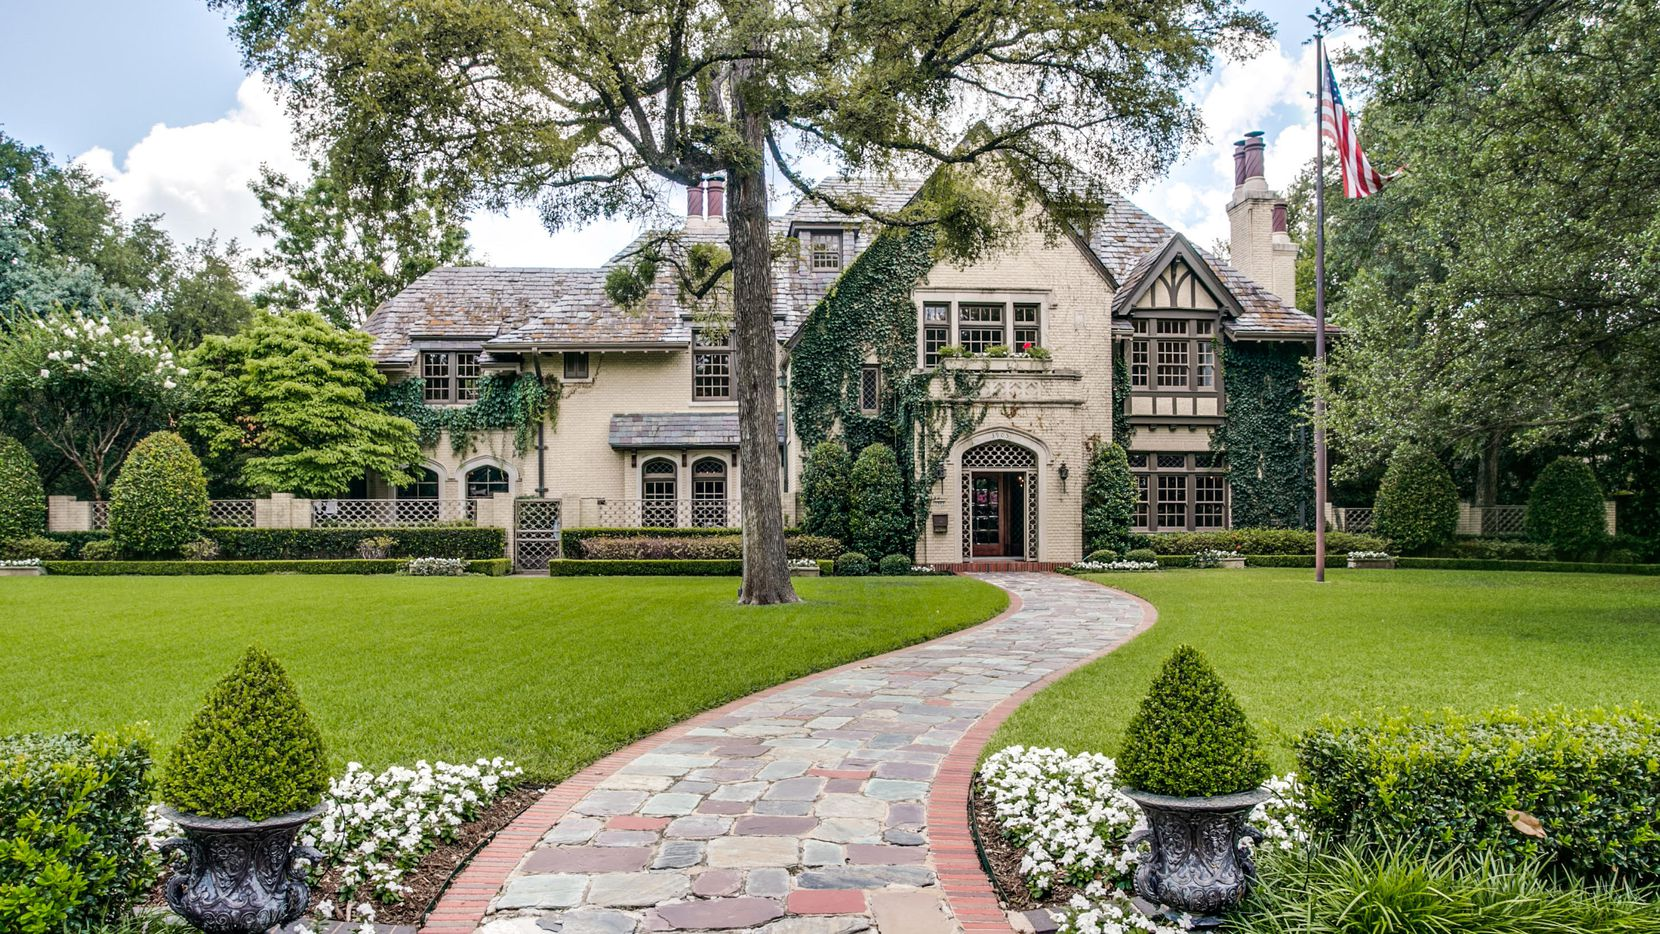 The Wyly house on Beverly Drive was listed for sale for $12.5 million.